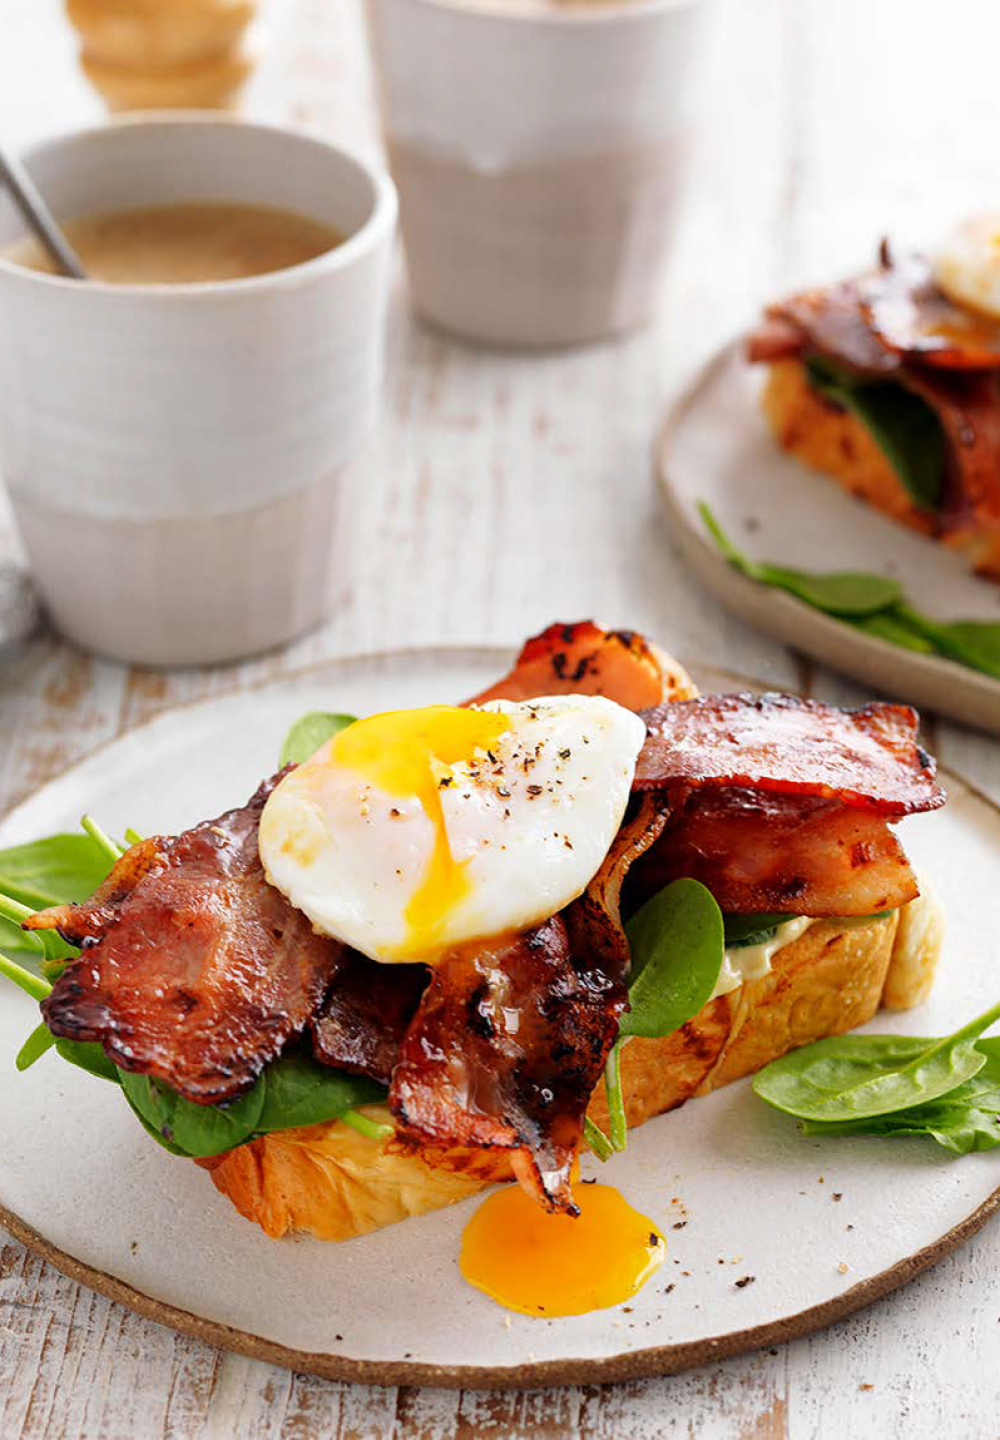 Maple-glazed Bacon And Poached Eggs On Brioche